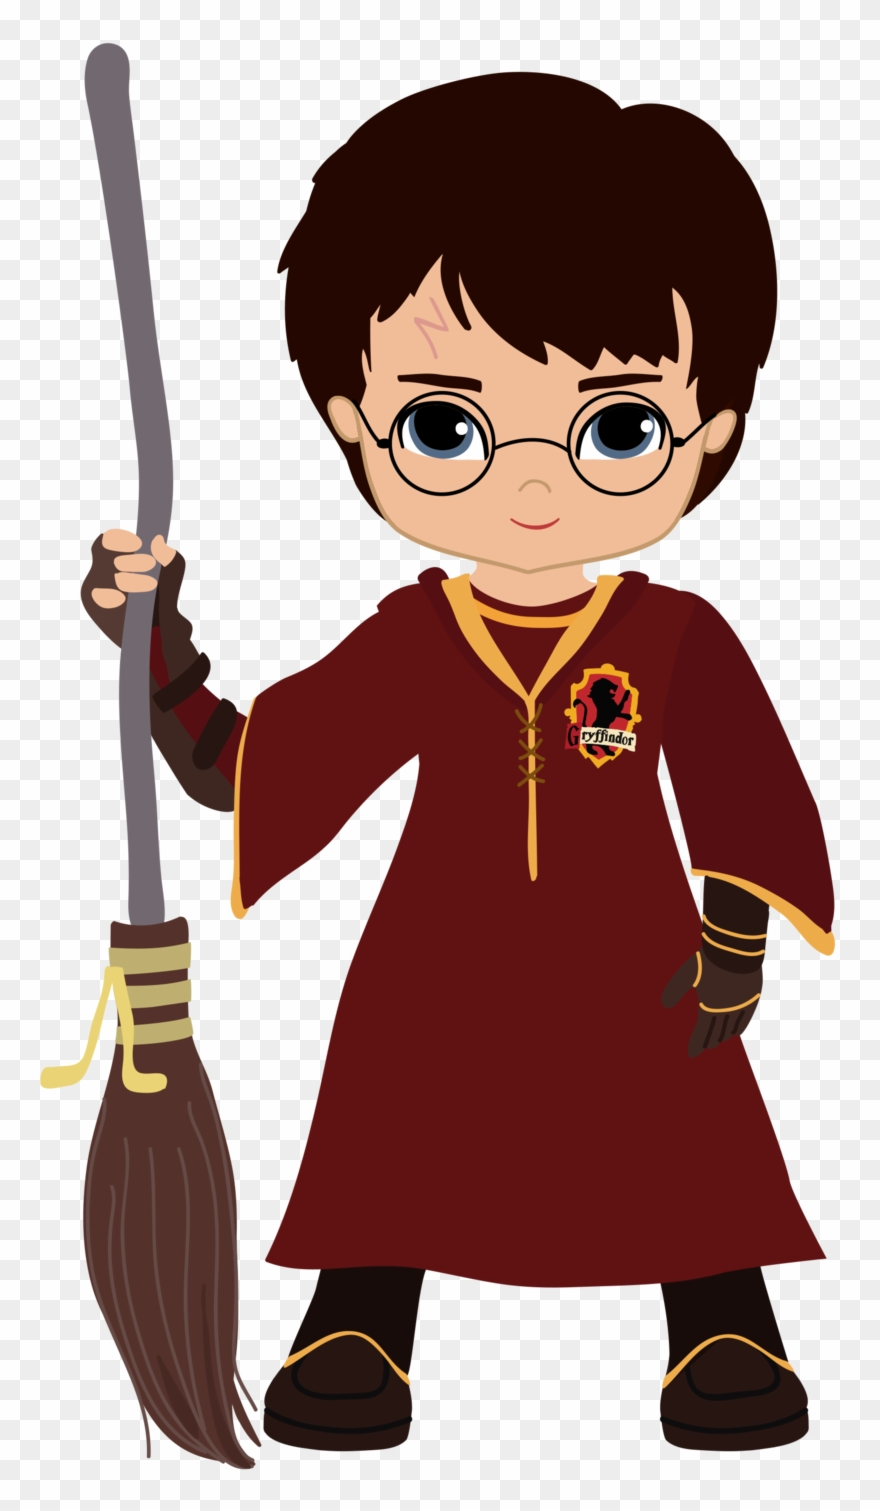 Clipart harry potter jpg library download Harry Potter Png Transparent Image - Harry Potter Clipart Png ... jpg library download